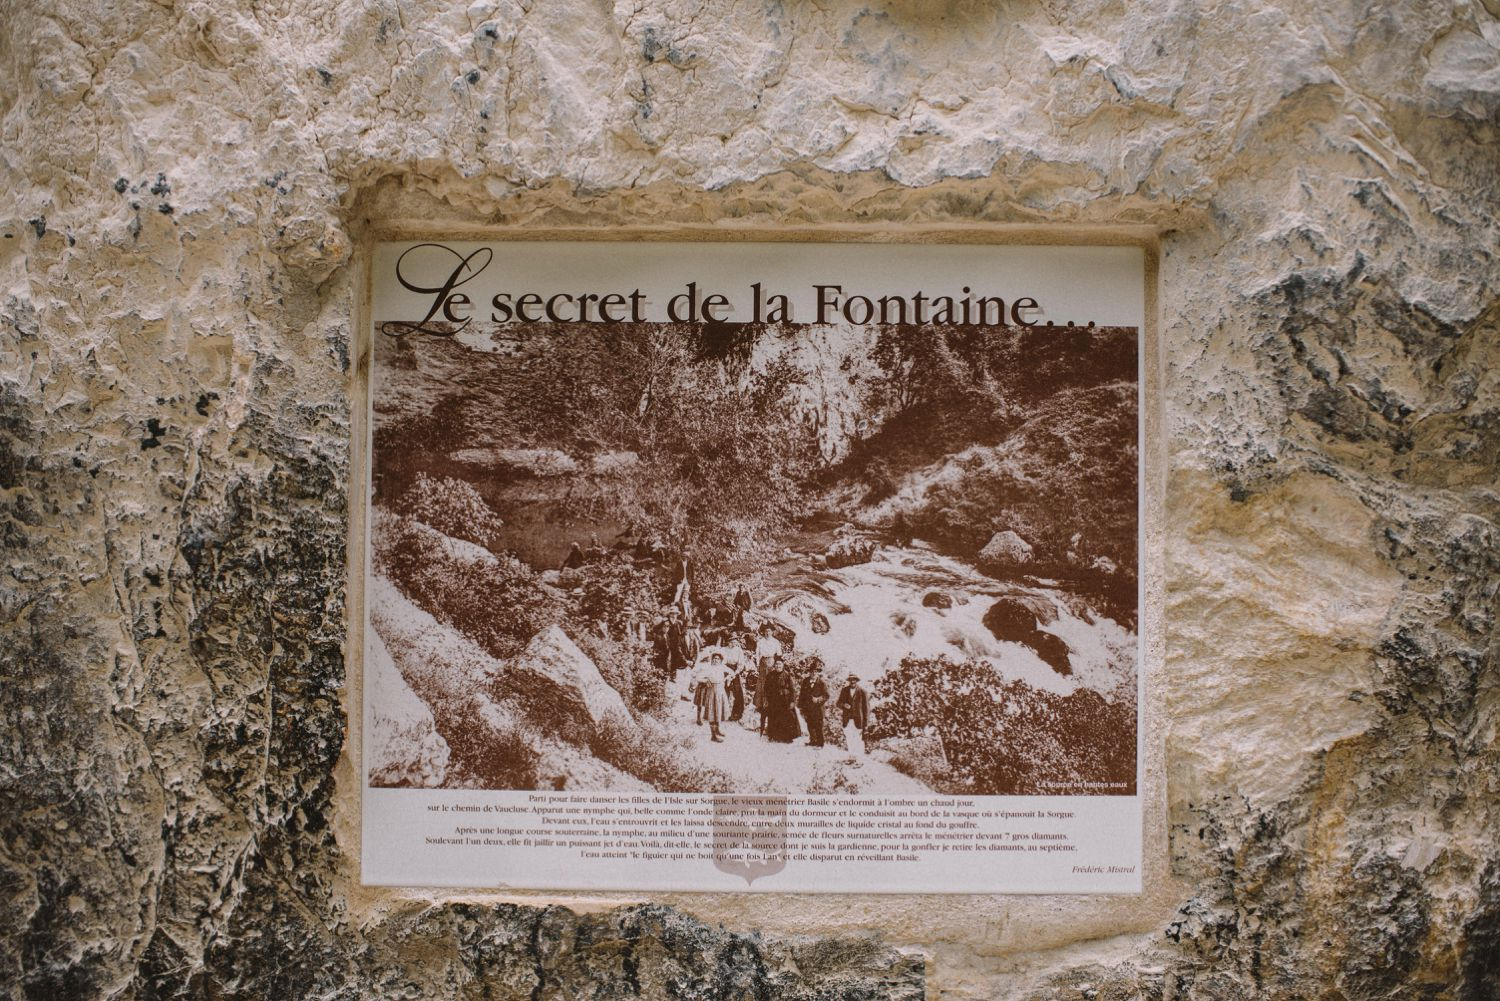 Fontaine de Vaucluse Travel Adventure